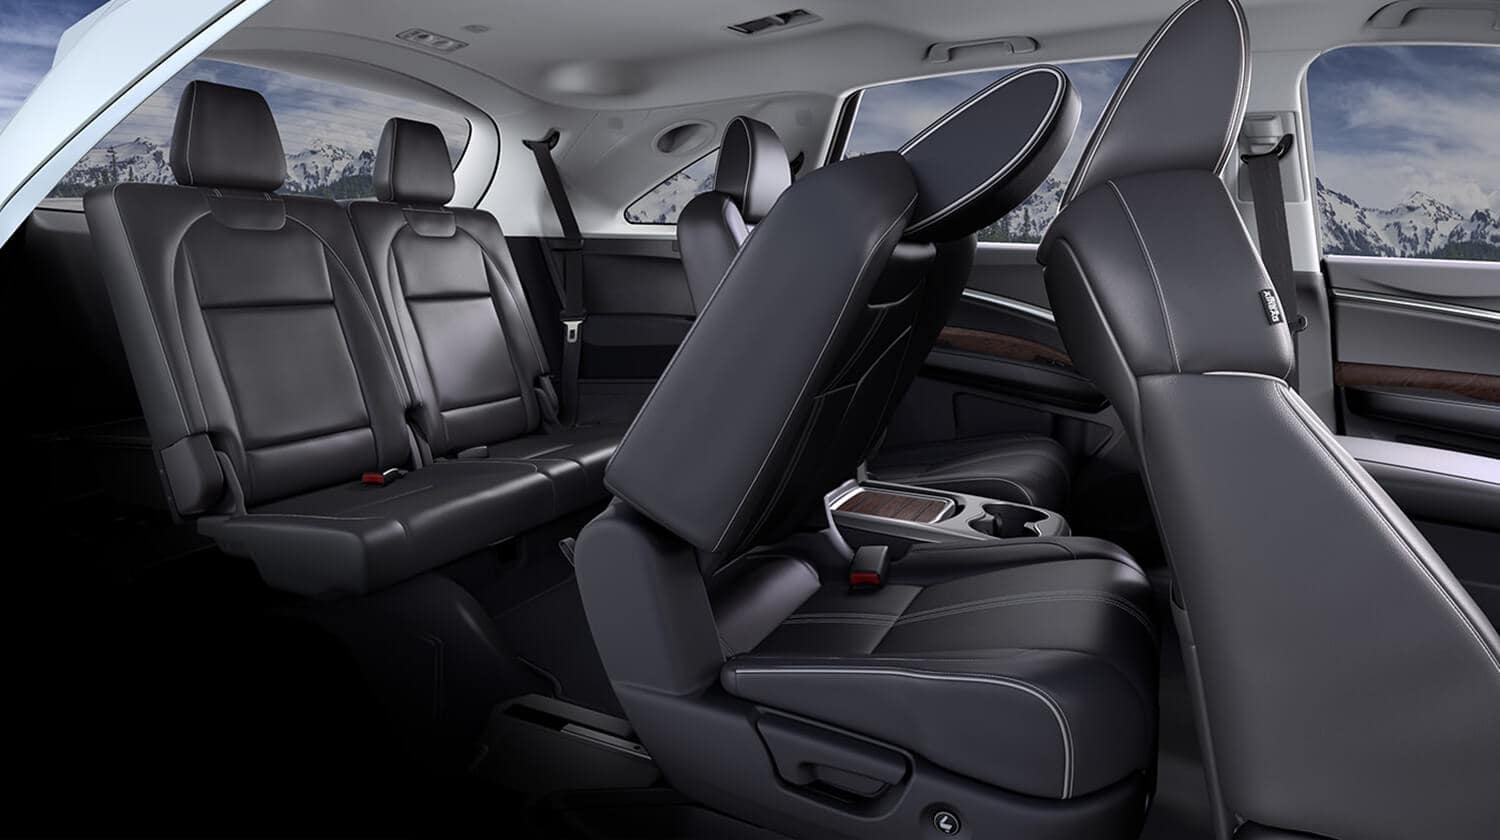 2020 Acura MDX SH-AWD Interior Seating 3rd-Row Access